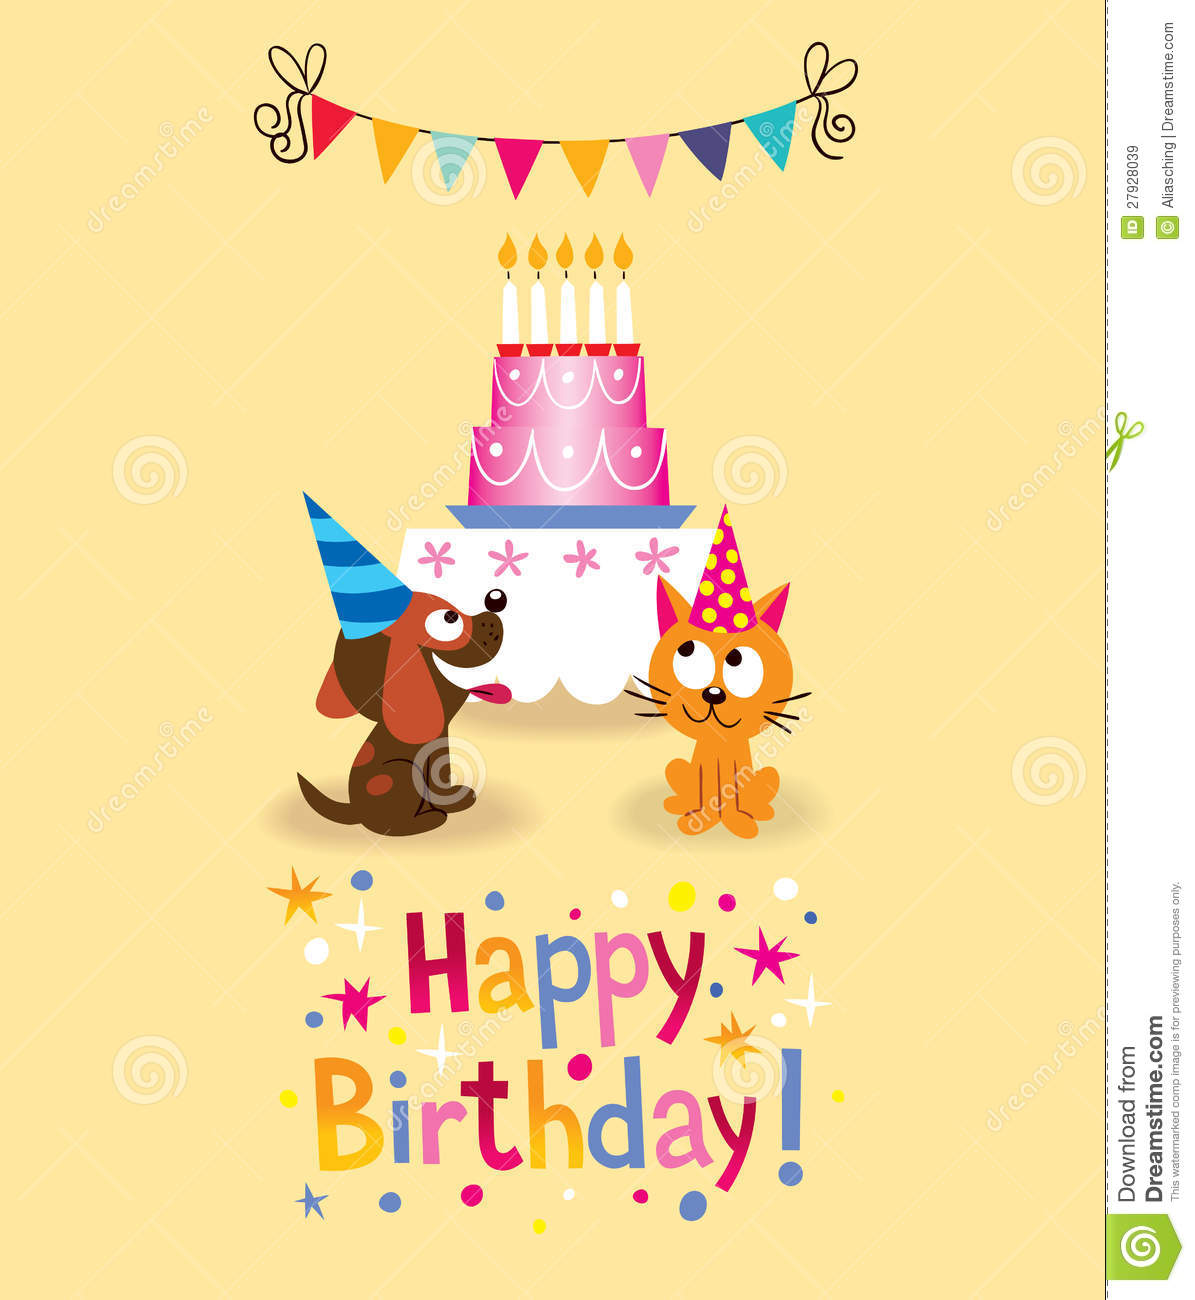 Happy birthday card stock vector illustration of card 27928039 happy birthday card bookmarktalkfo Choice Image